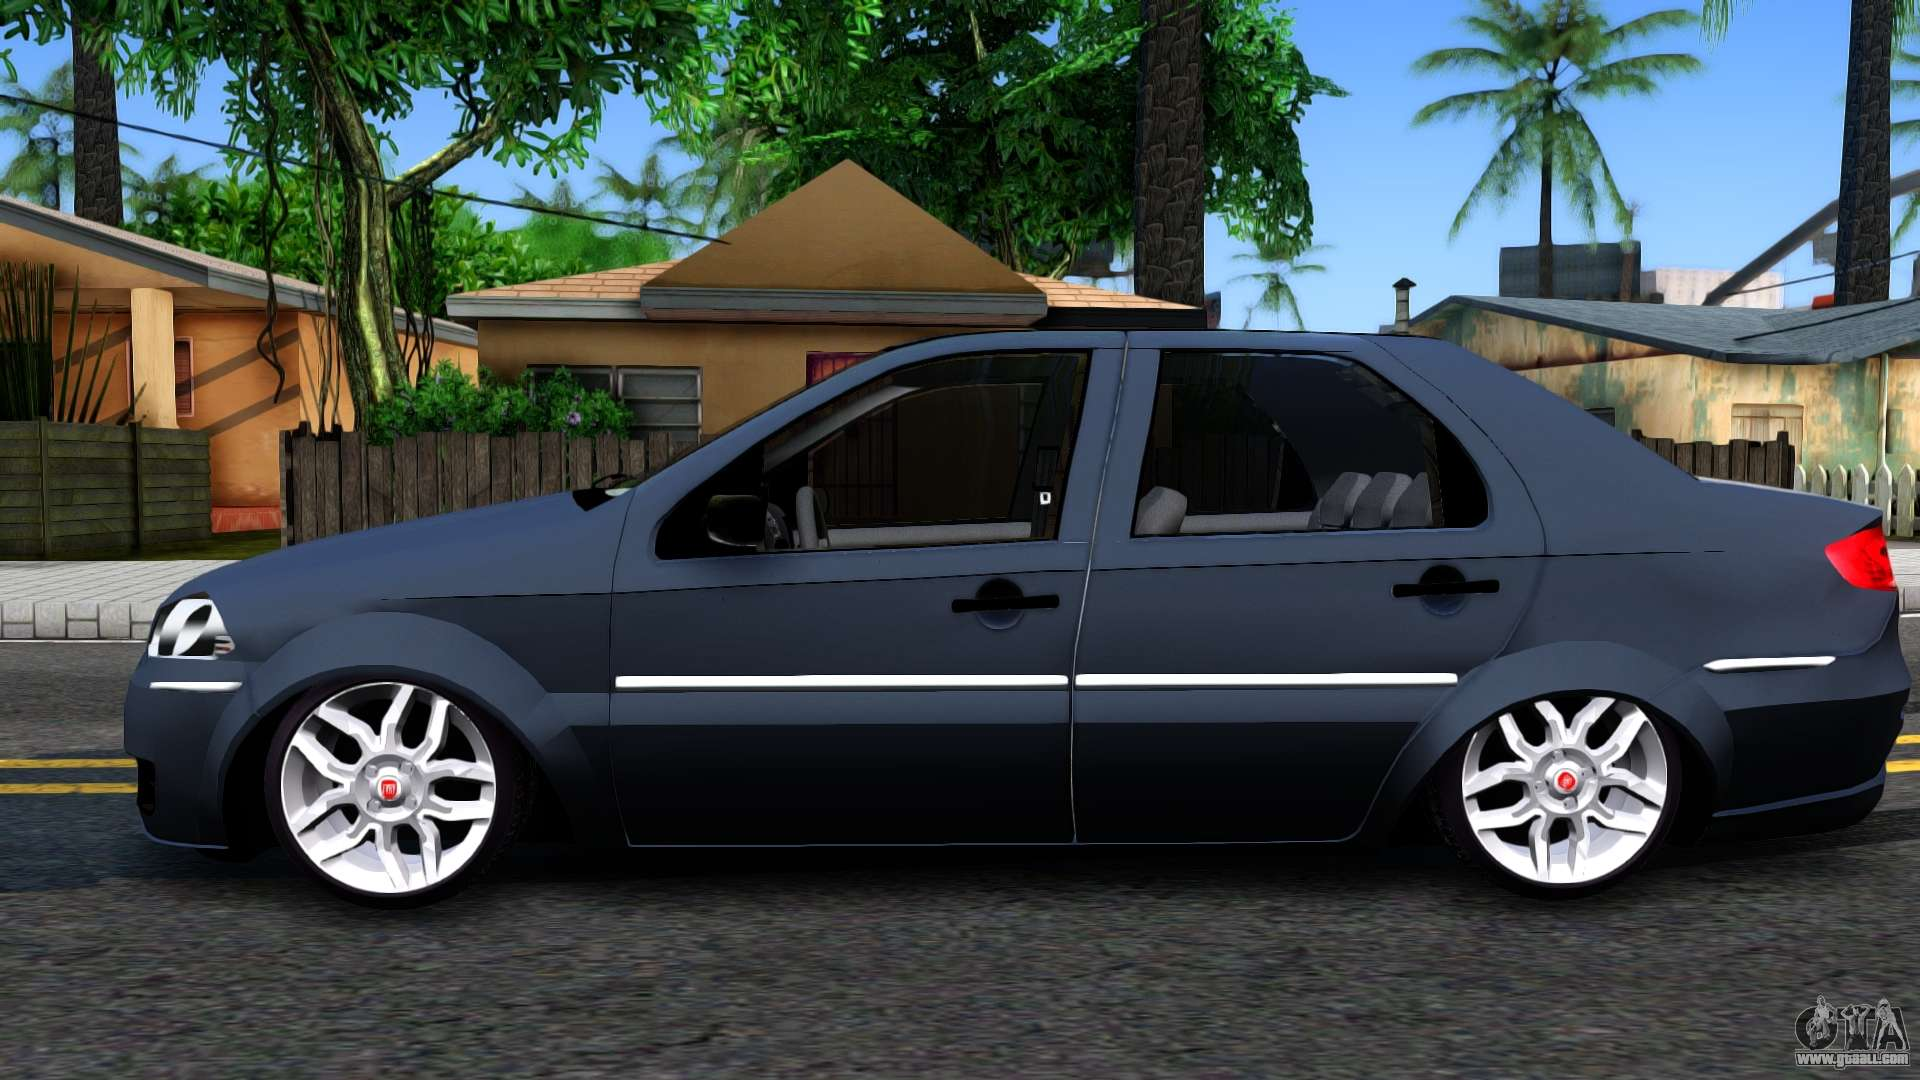 for siena photos can galleries cars fiat vote photo this you of topworldauto